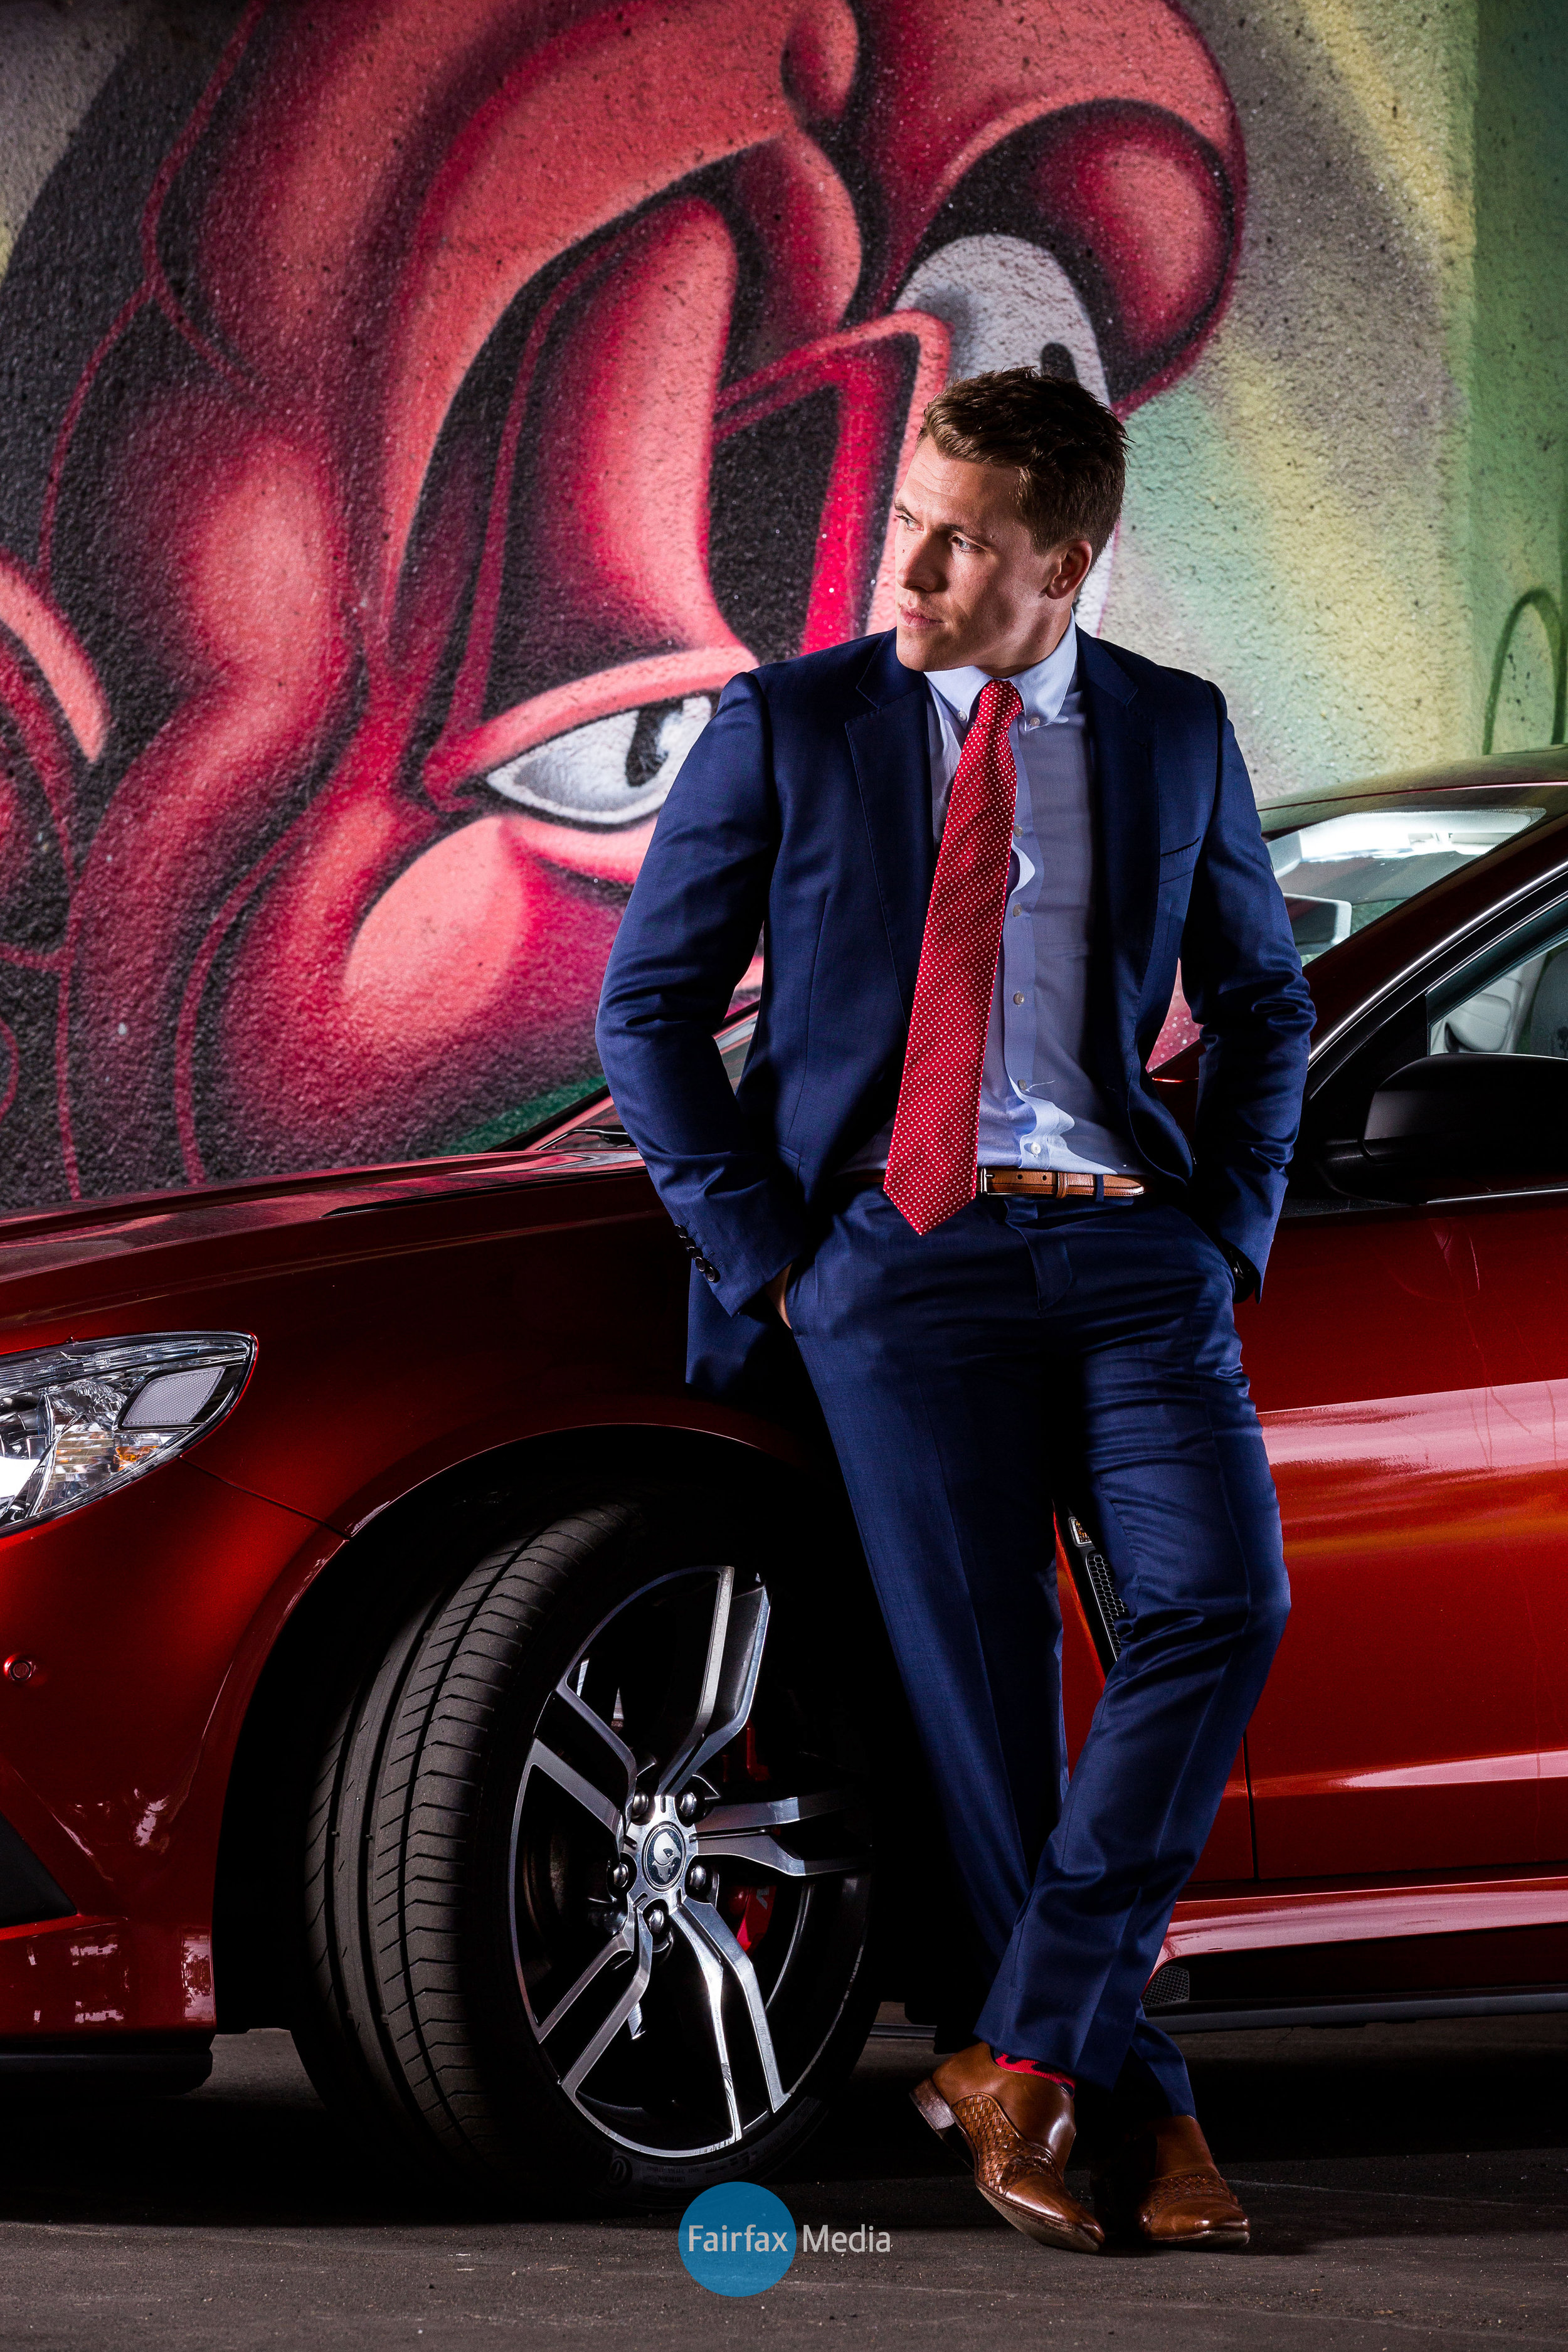 Colorful male fashion image of man in suite leaning against a red sports car with graffiti wall behind him